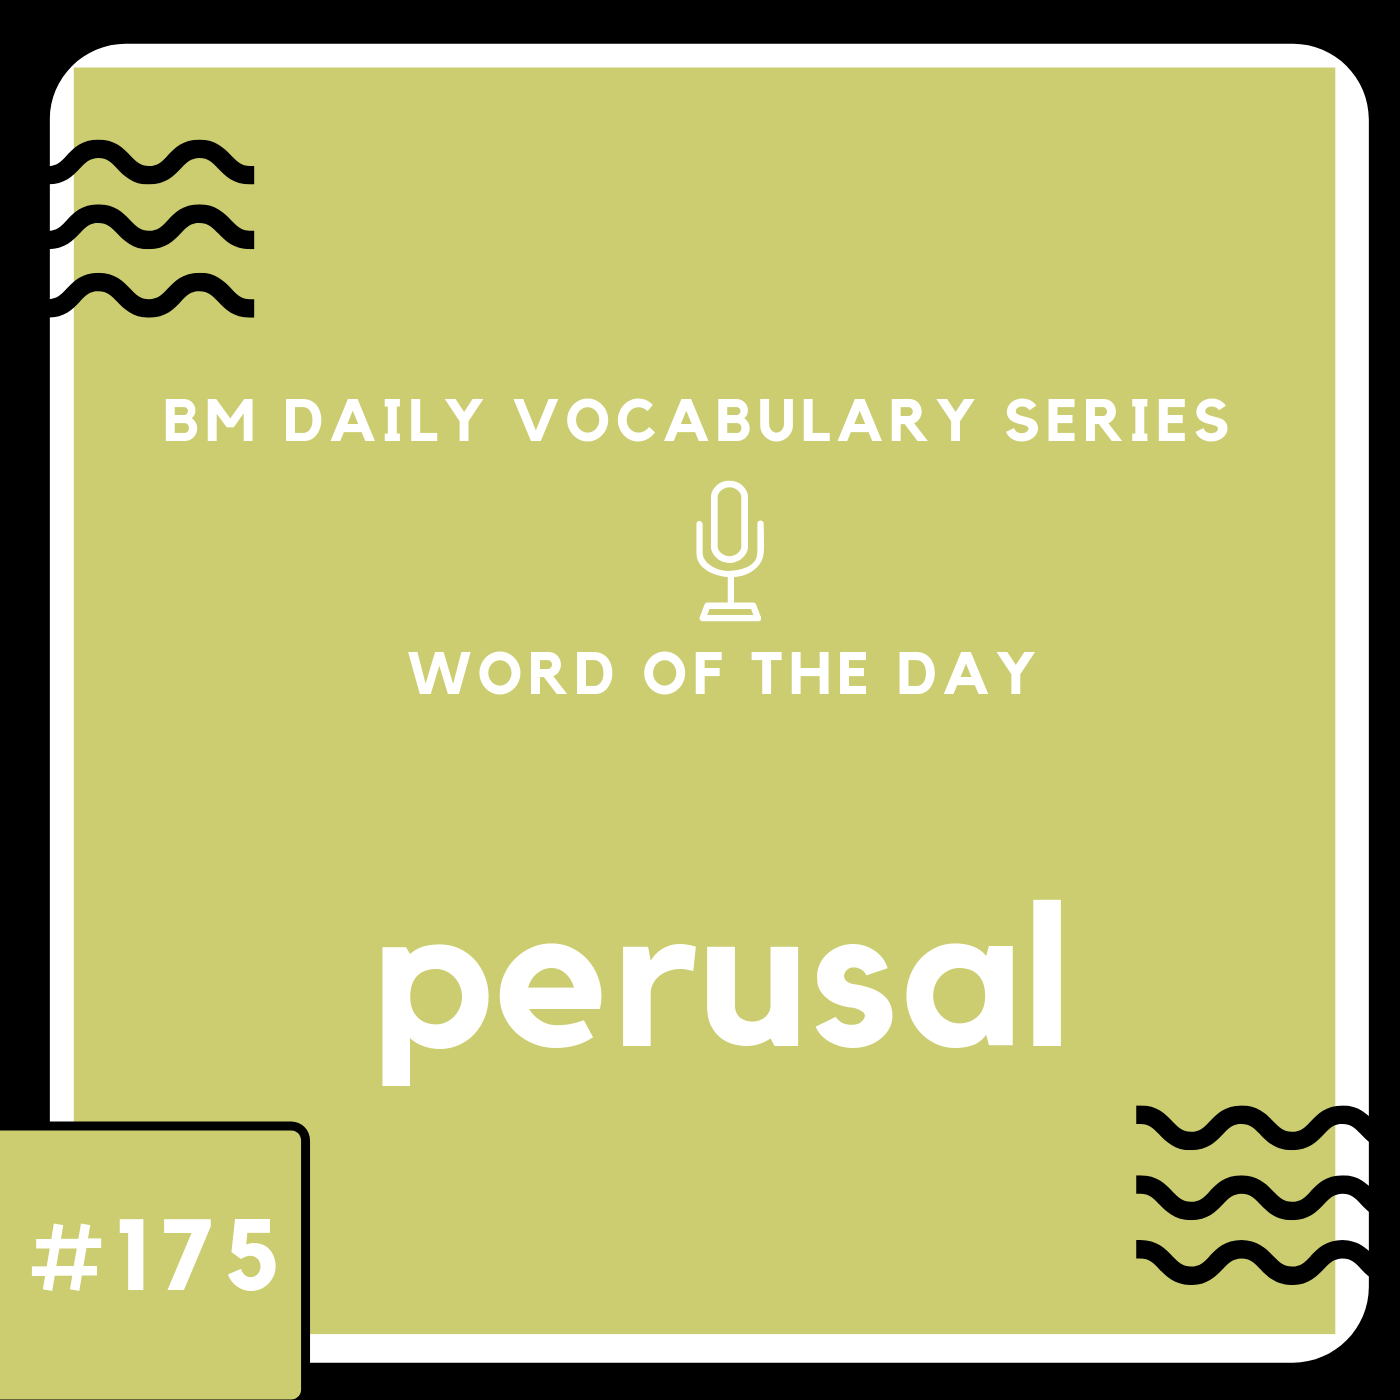 200 BM Daily Vocabulary #175 | perusal